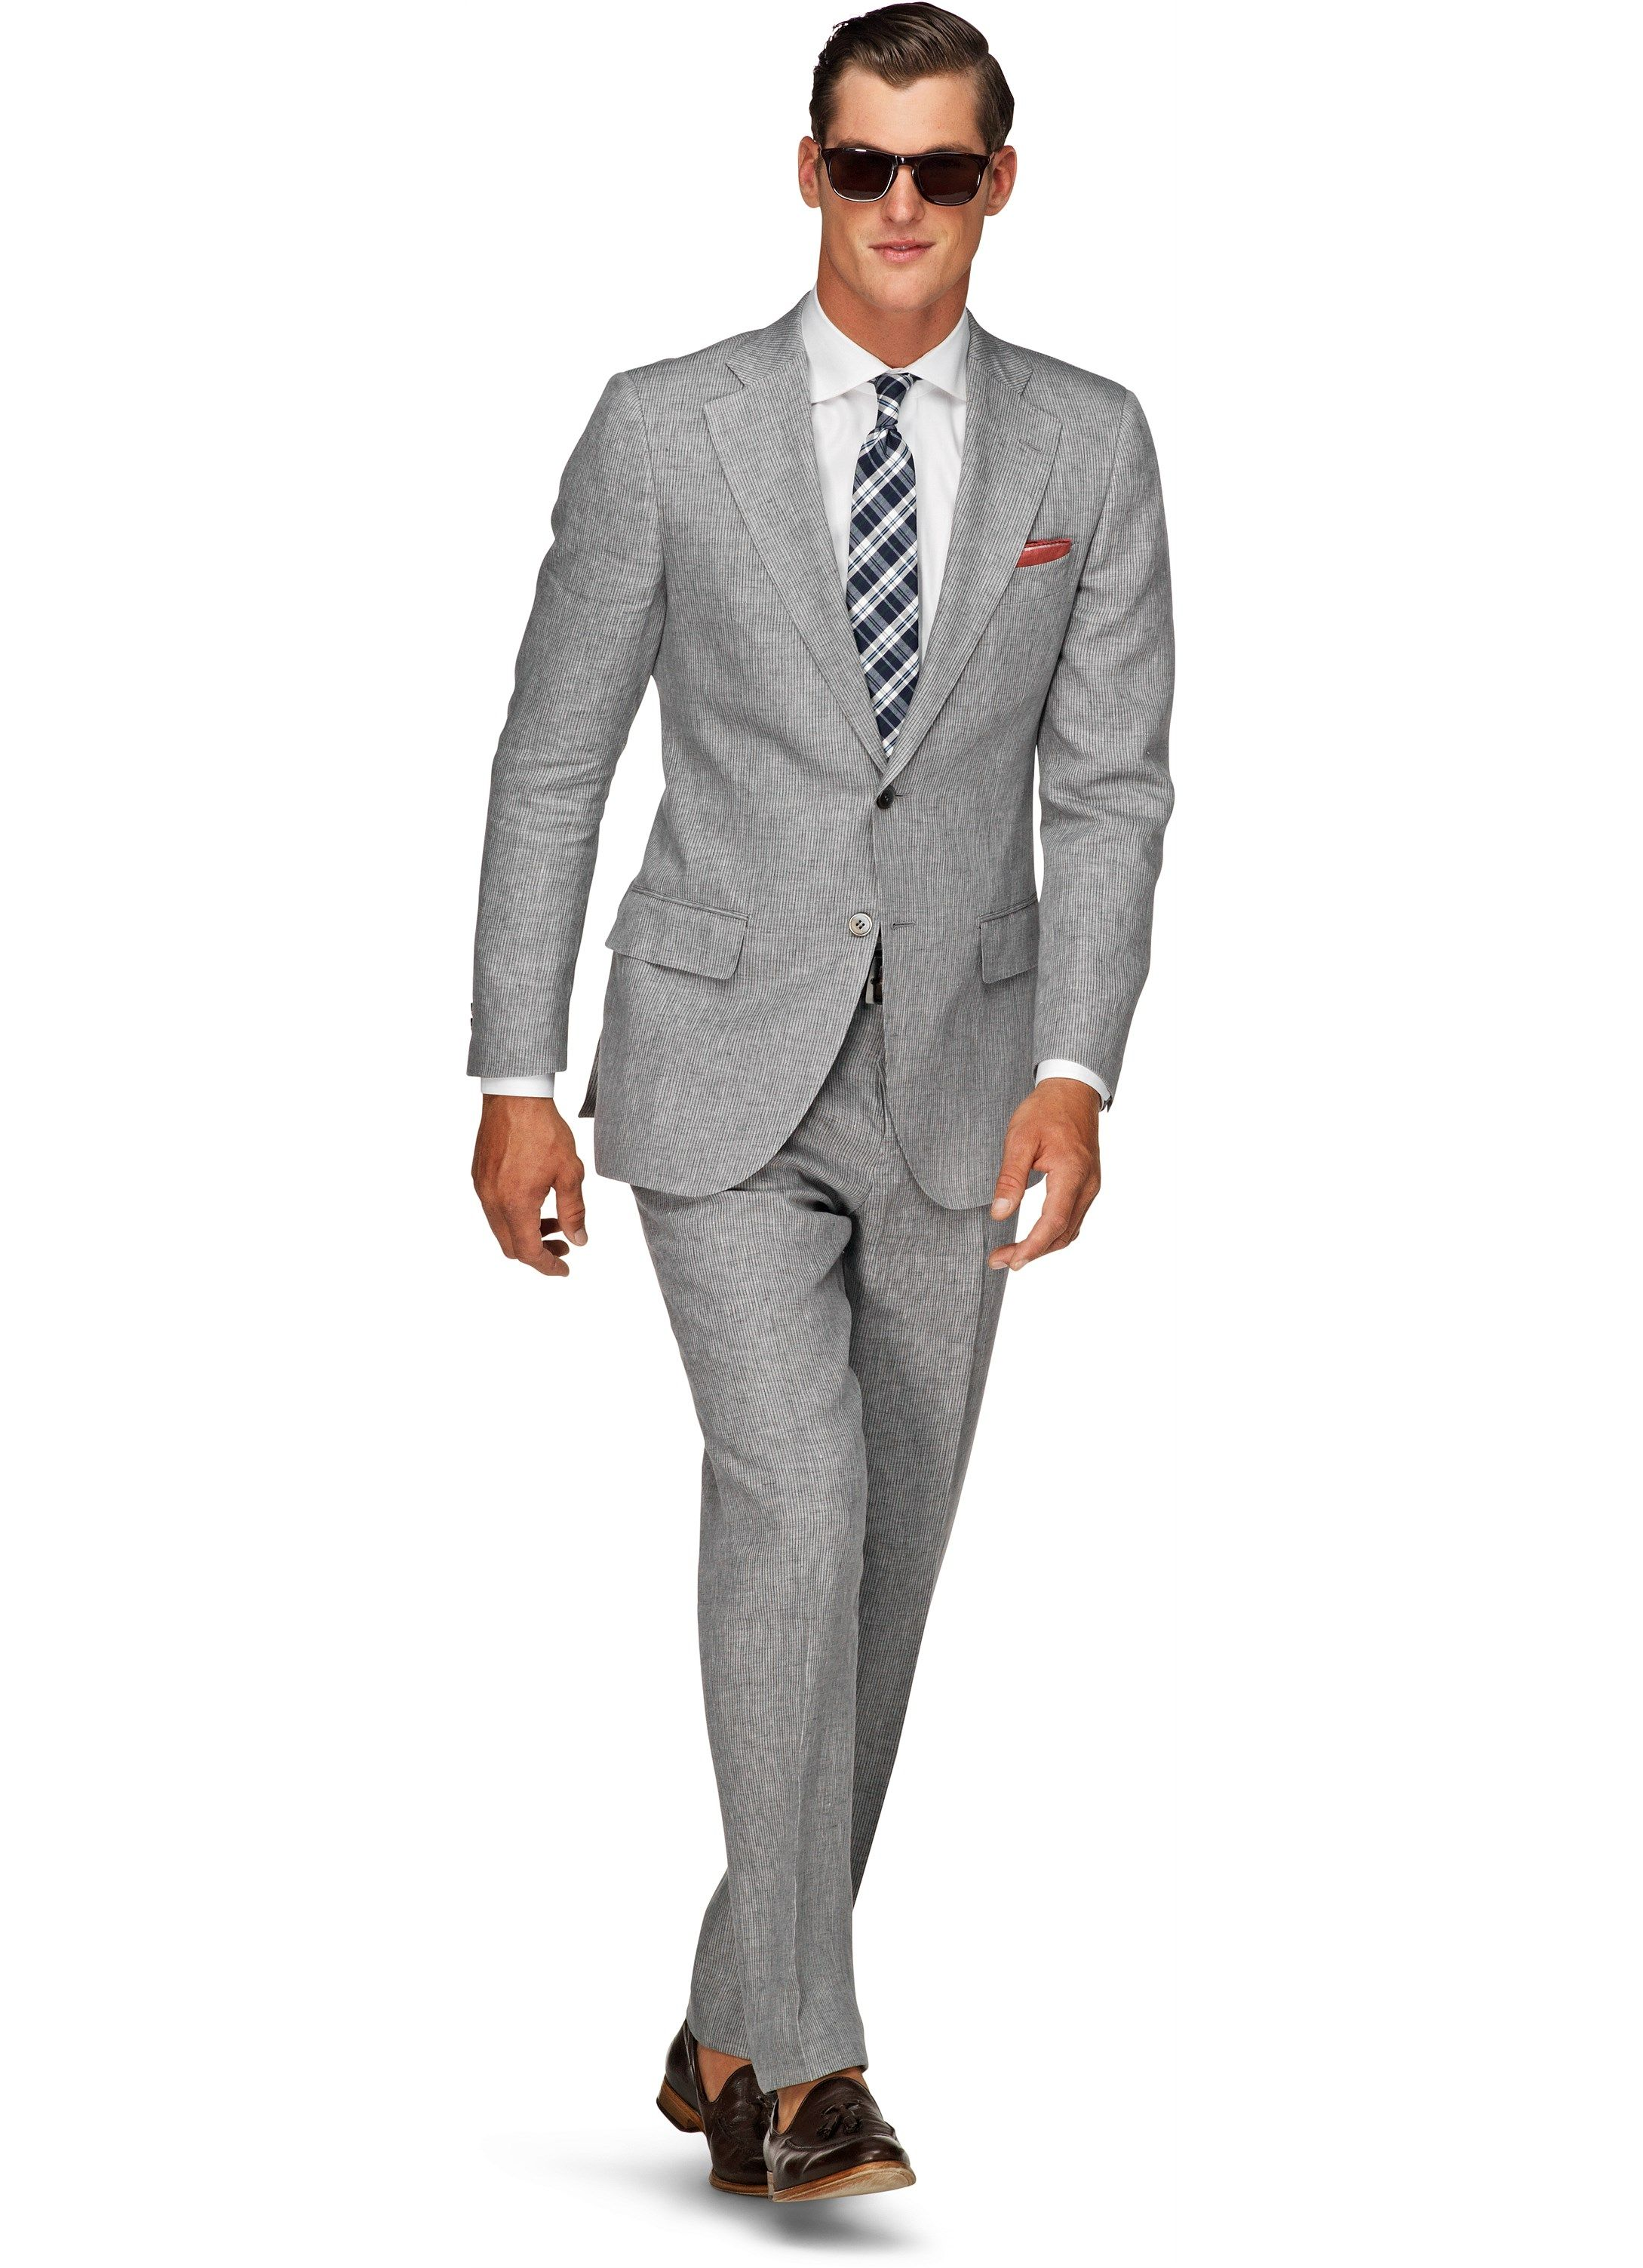 Suit Supply: LAZIO LICHTGRIJS STREEP | Gentlemen's candy ...